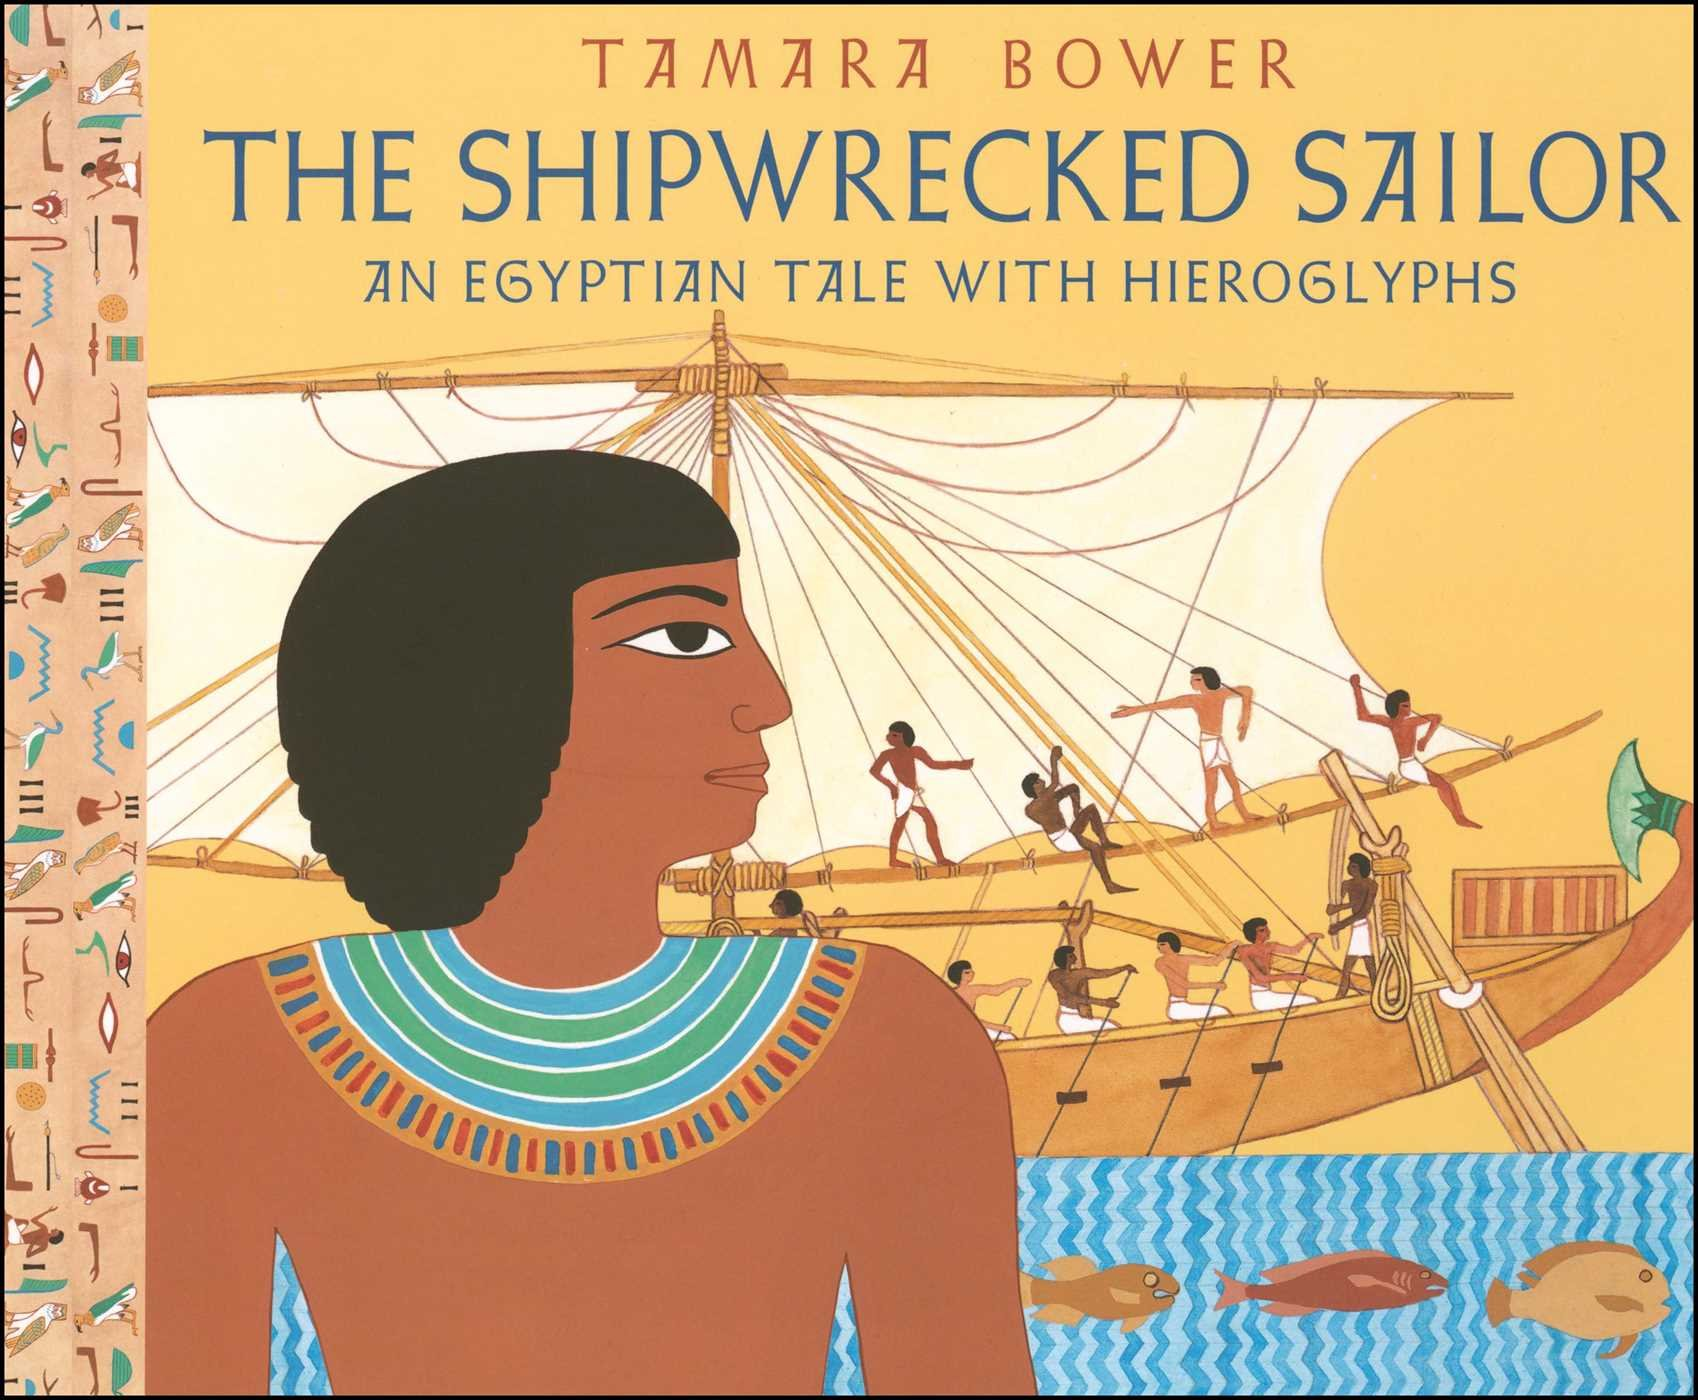 The Shipwrecked Sailor: An Egyptian Tale with Hieroglyphs pdf